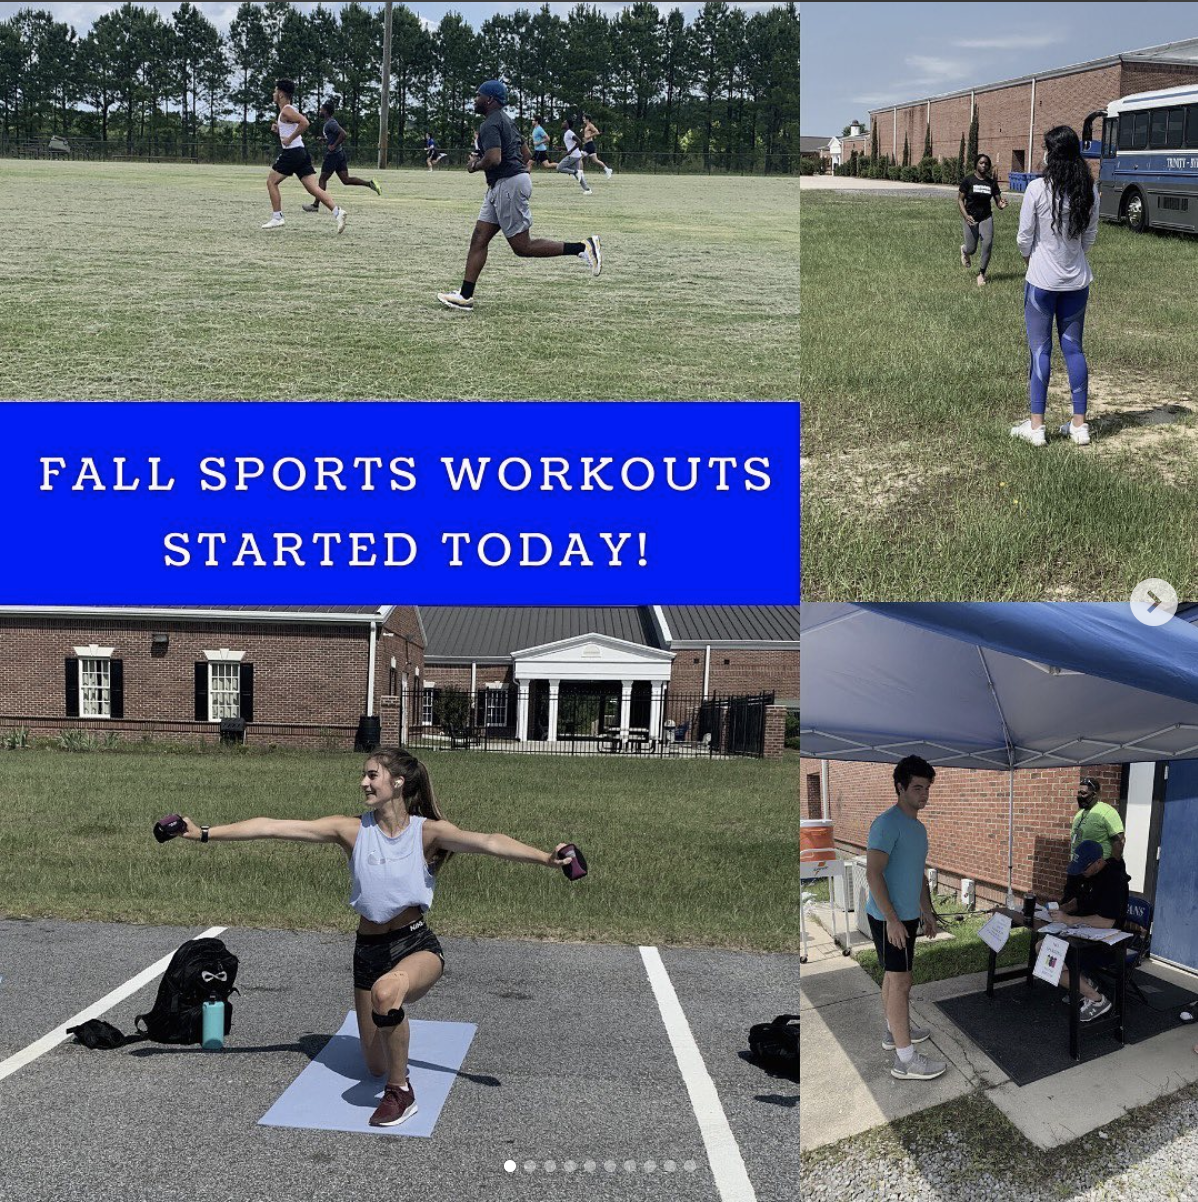 Fall Workouts Started!